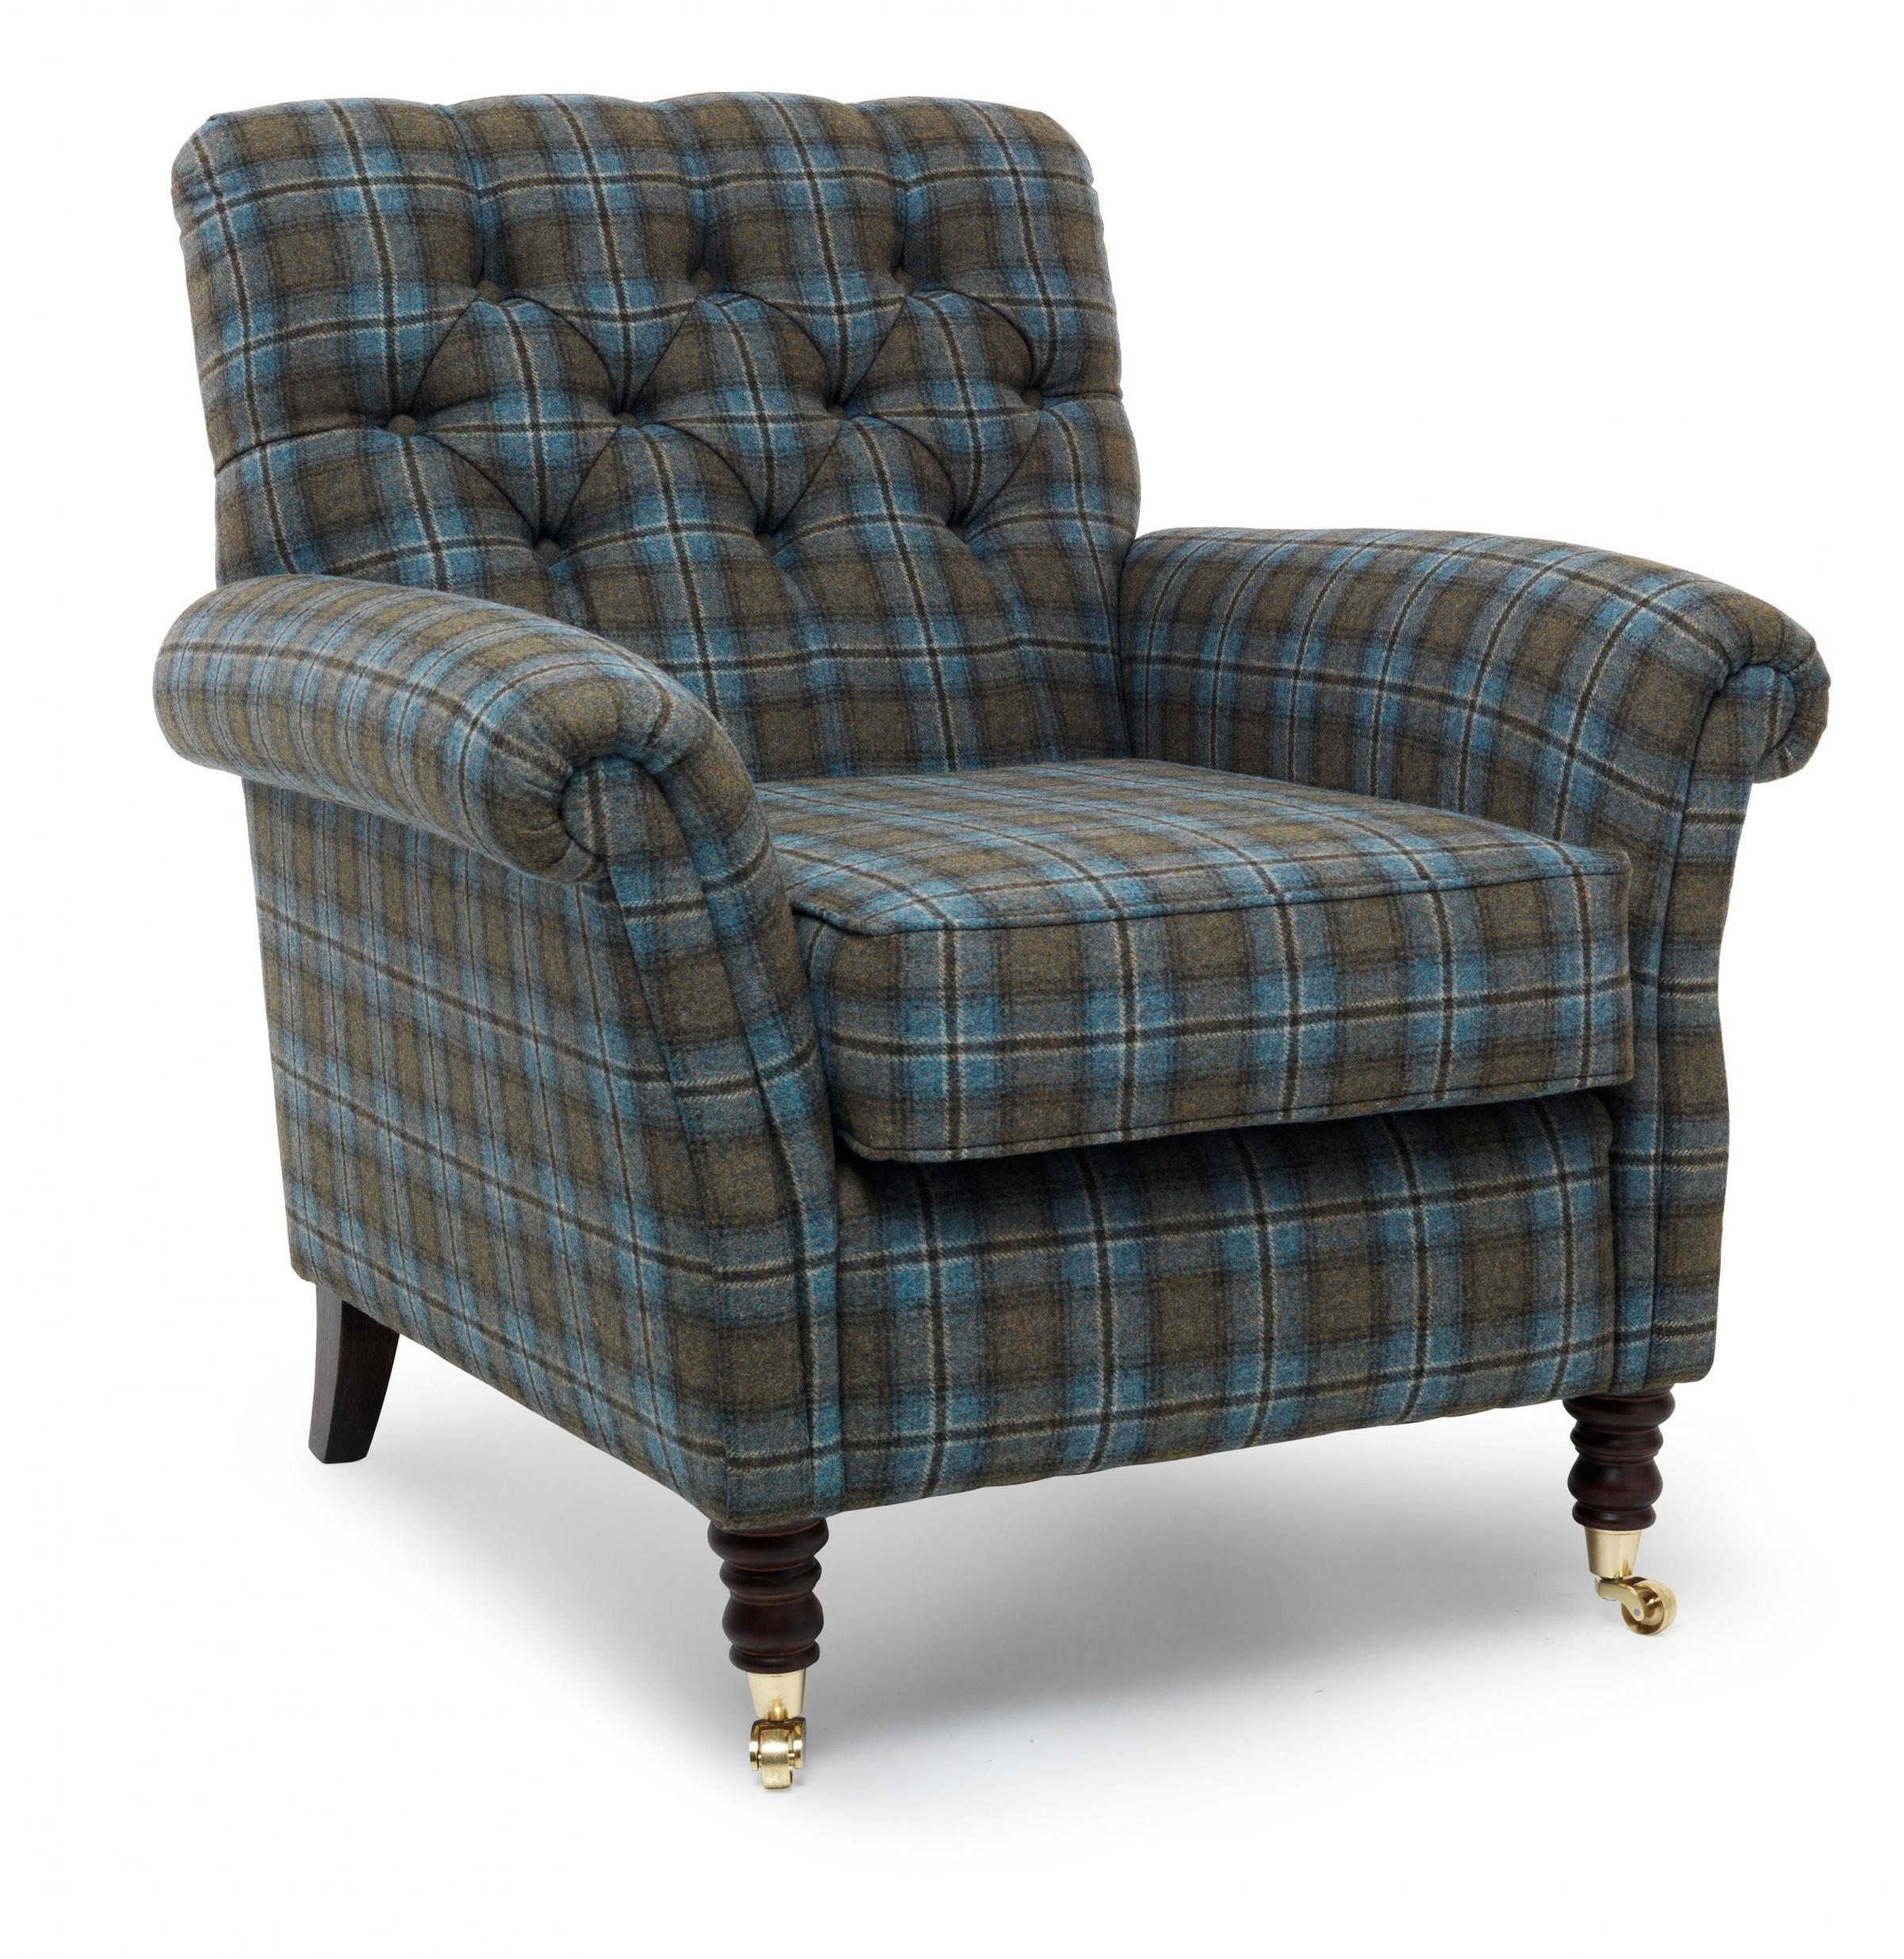 Tartan up your home for autumn